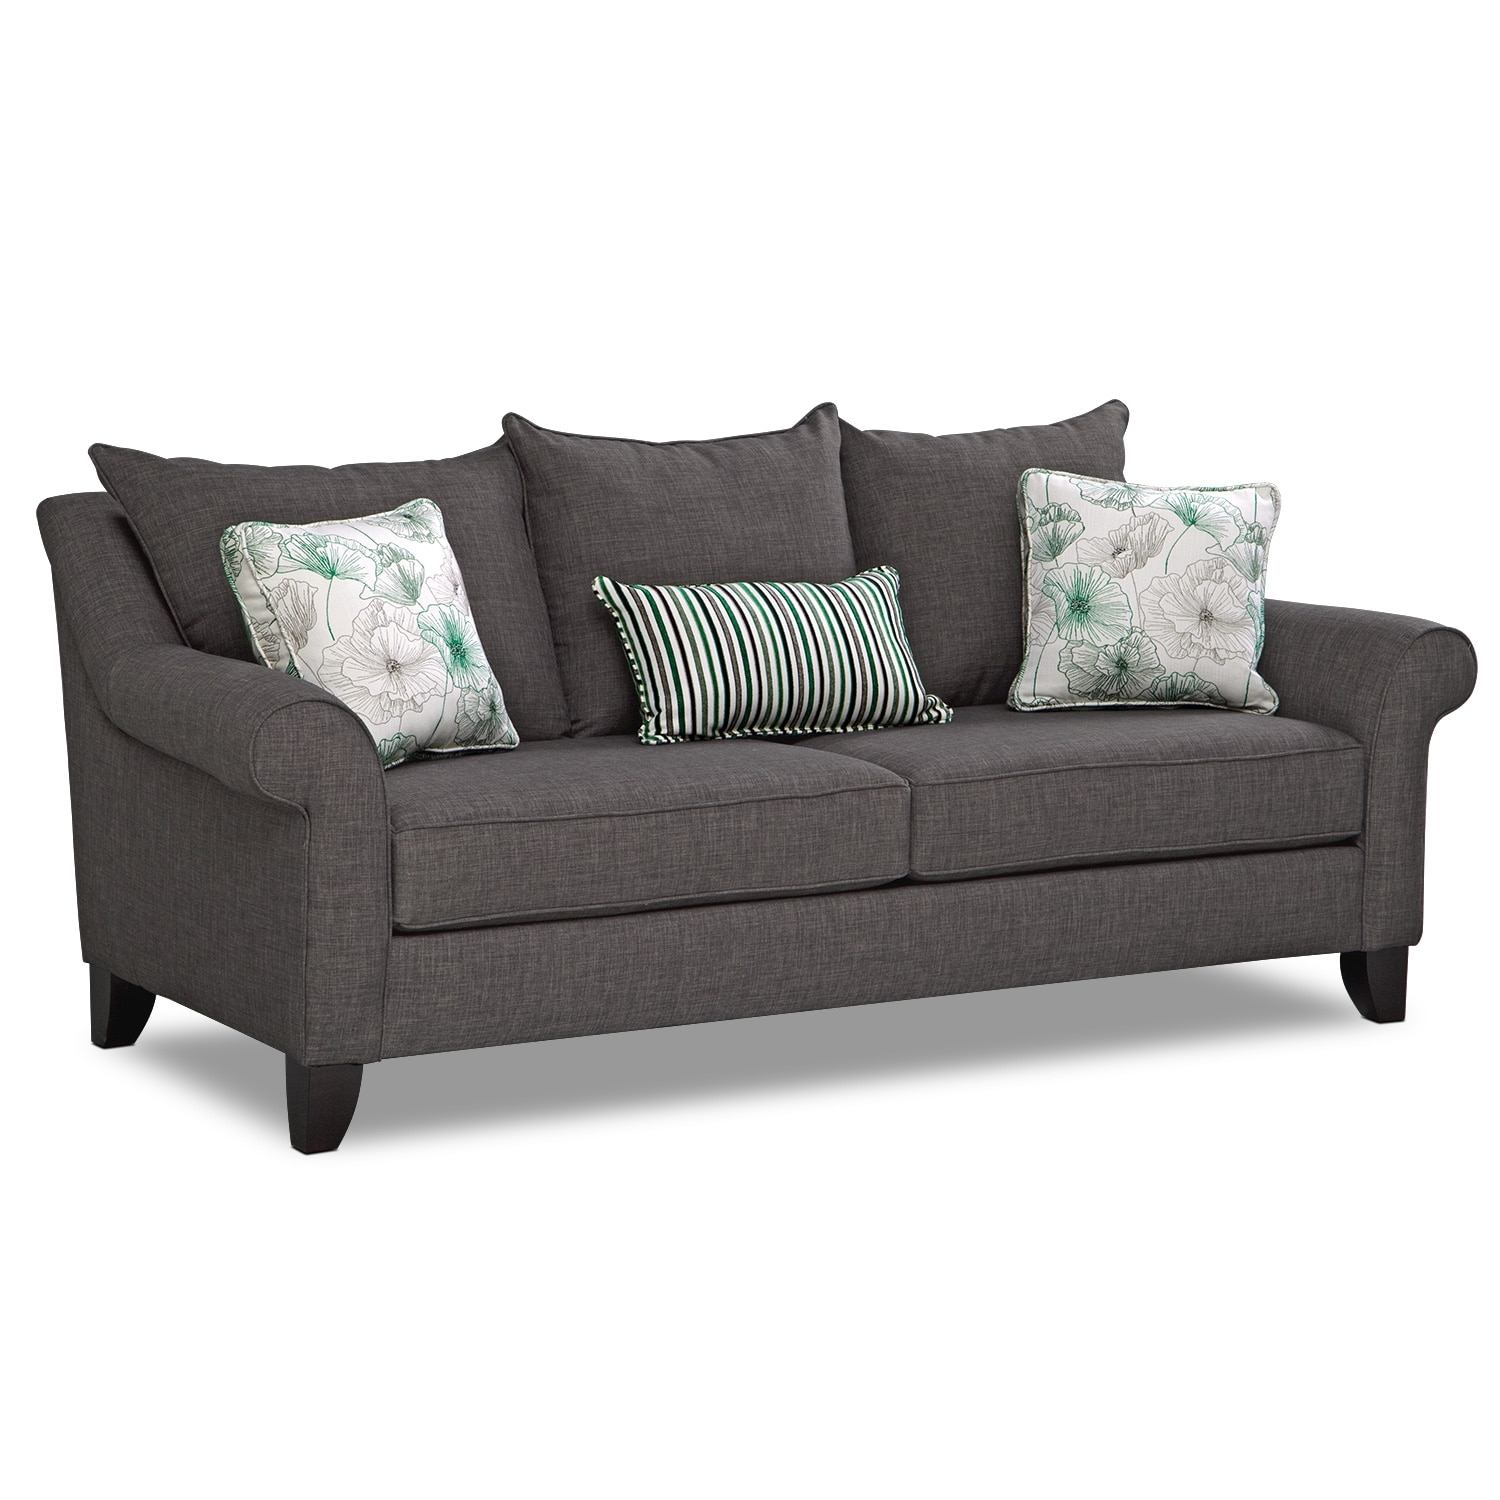 Jasmine Queen Innerspring Sleeper Sofa Value City Furniture